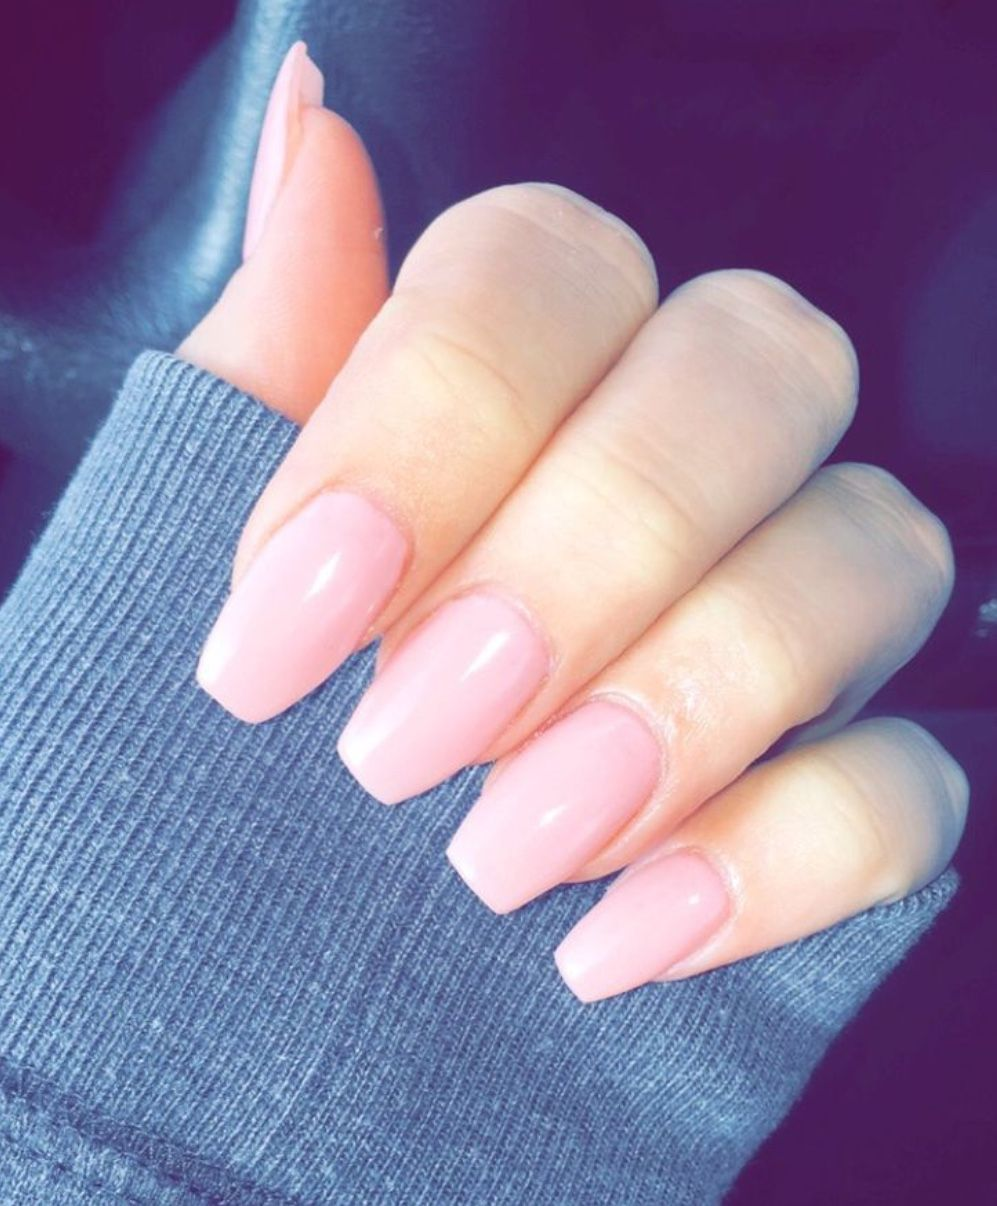 Pin By Josie Morrow On Beauty In 2019 Pink Nails Acrylic